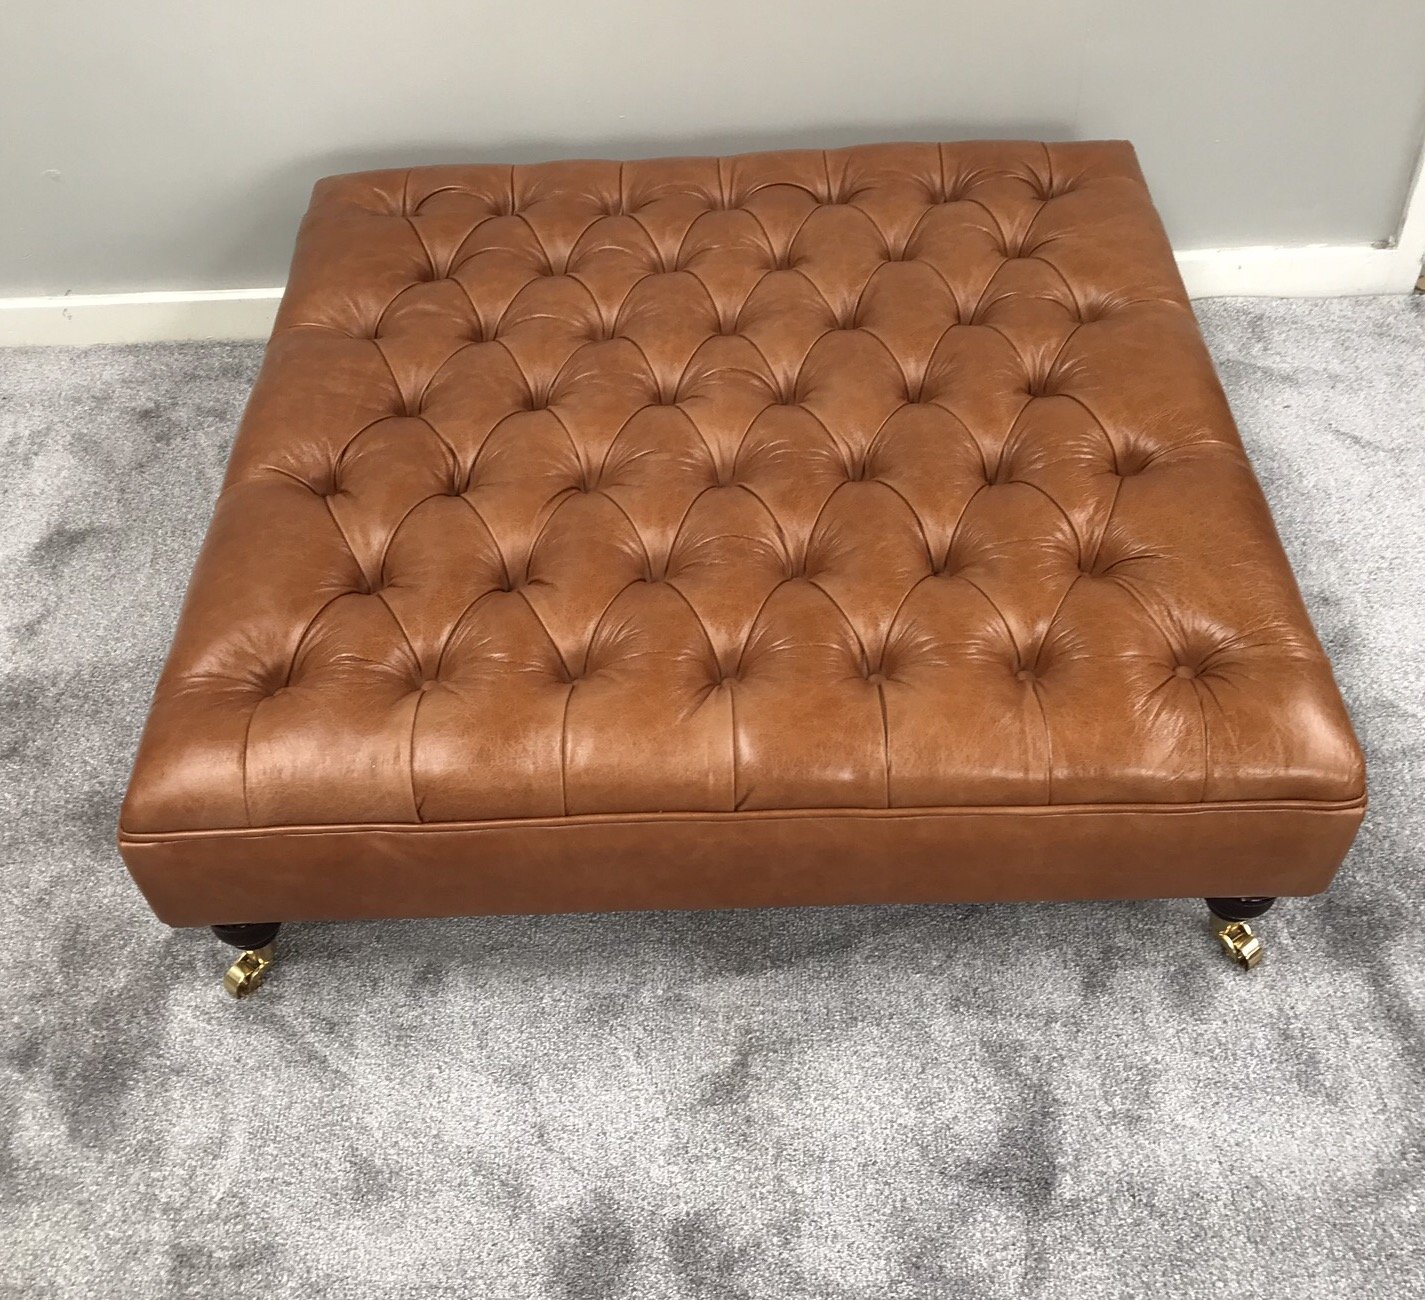 Extra Large Genuine Leather Chesterfield Footstool Deep Buttoned Ottoman Pull Up Leather Coffee Table Amazon Co Uk Handmade [ 1300 x 1425 Pixel ]